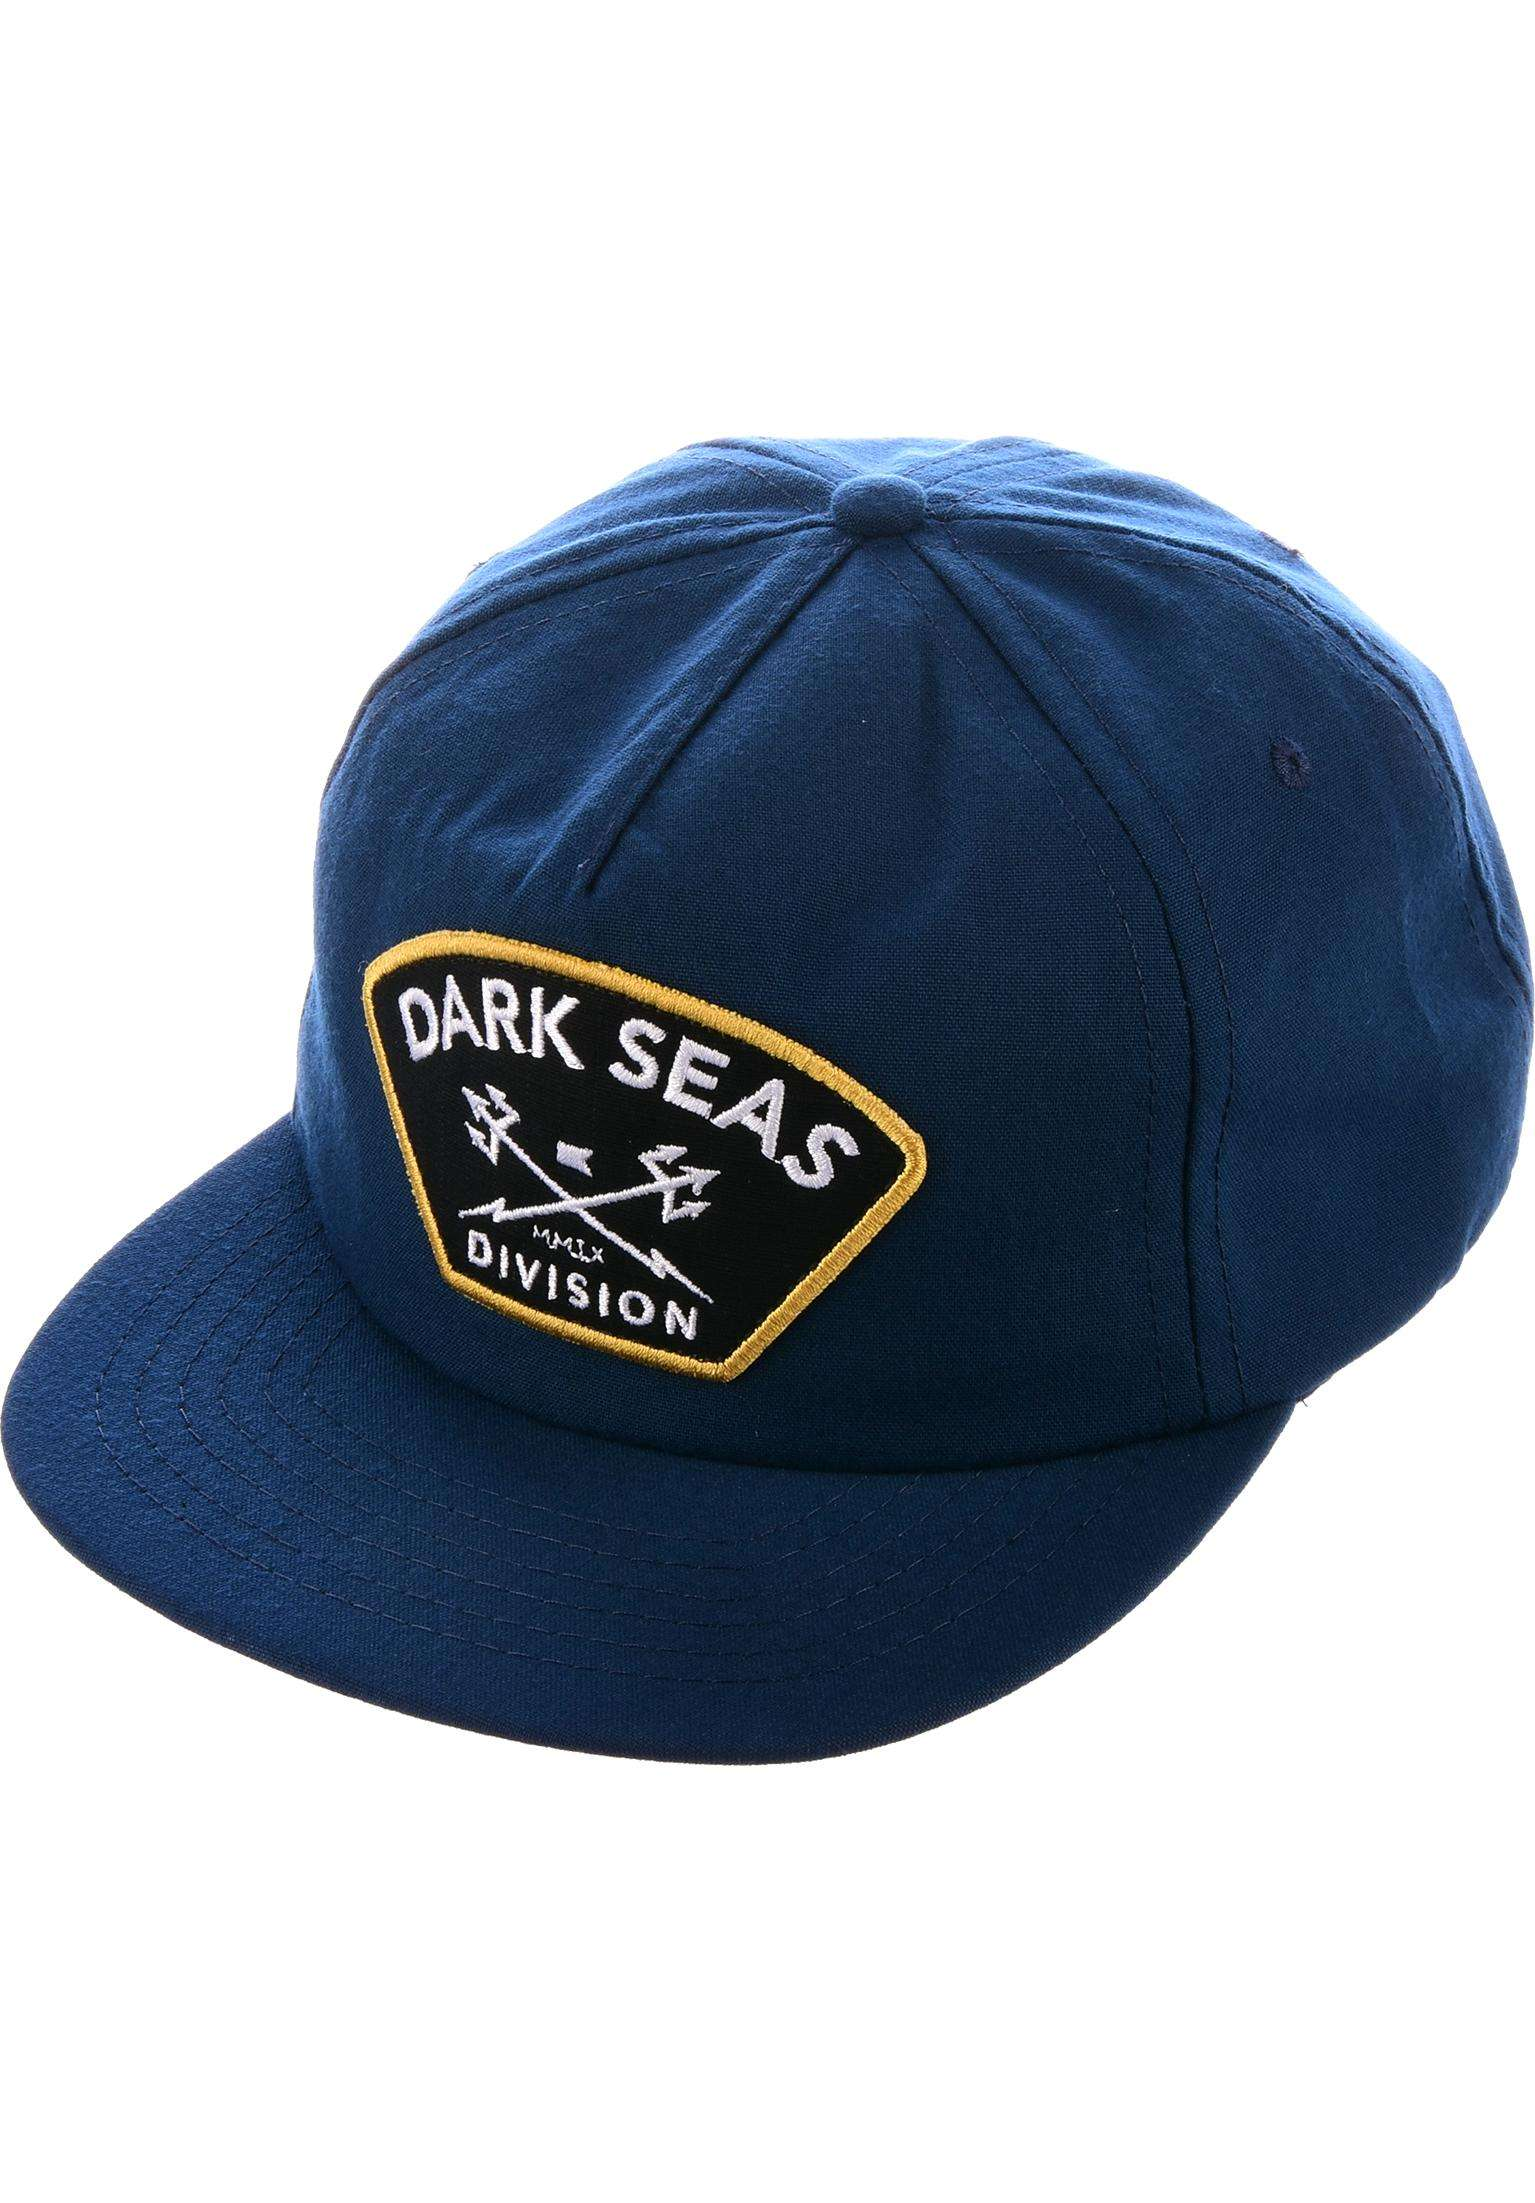 b187b74579e Tridents Poplin Unstructured Dark Seas Caps in navy for Men